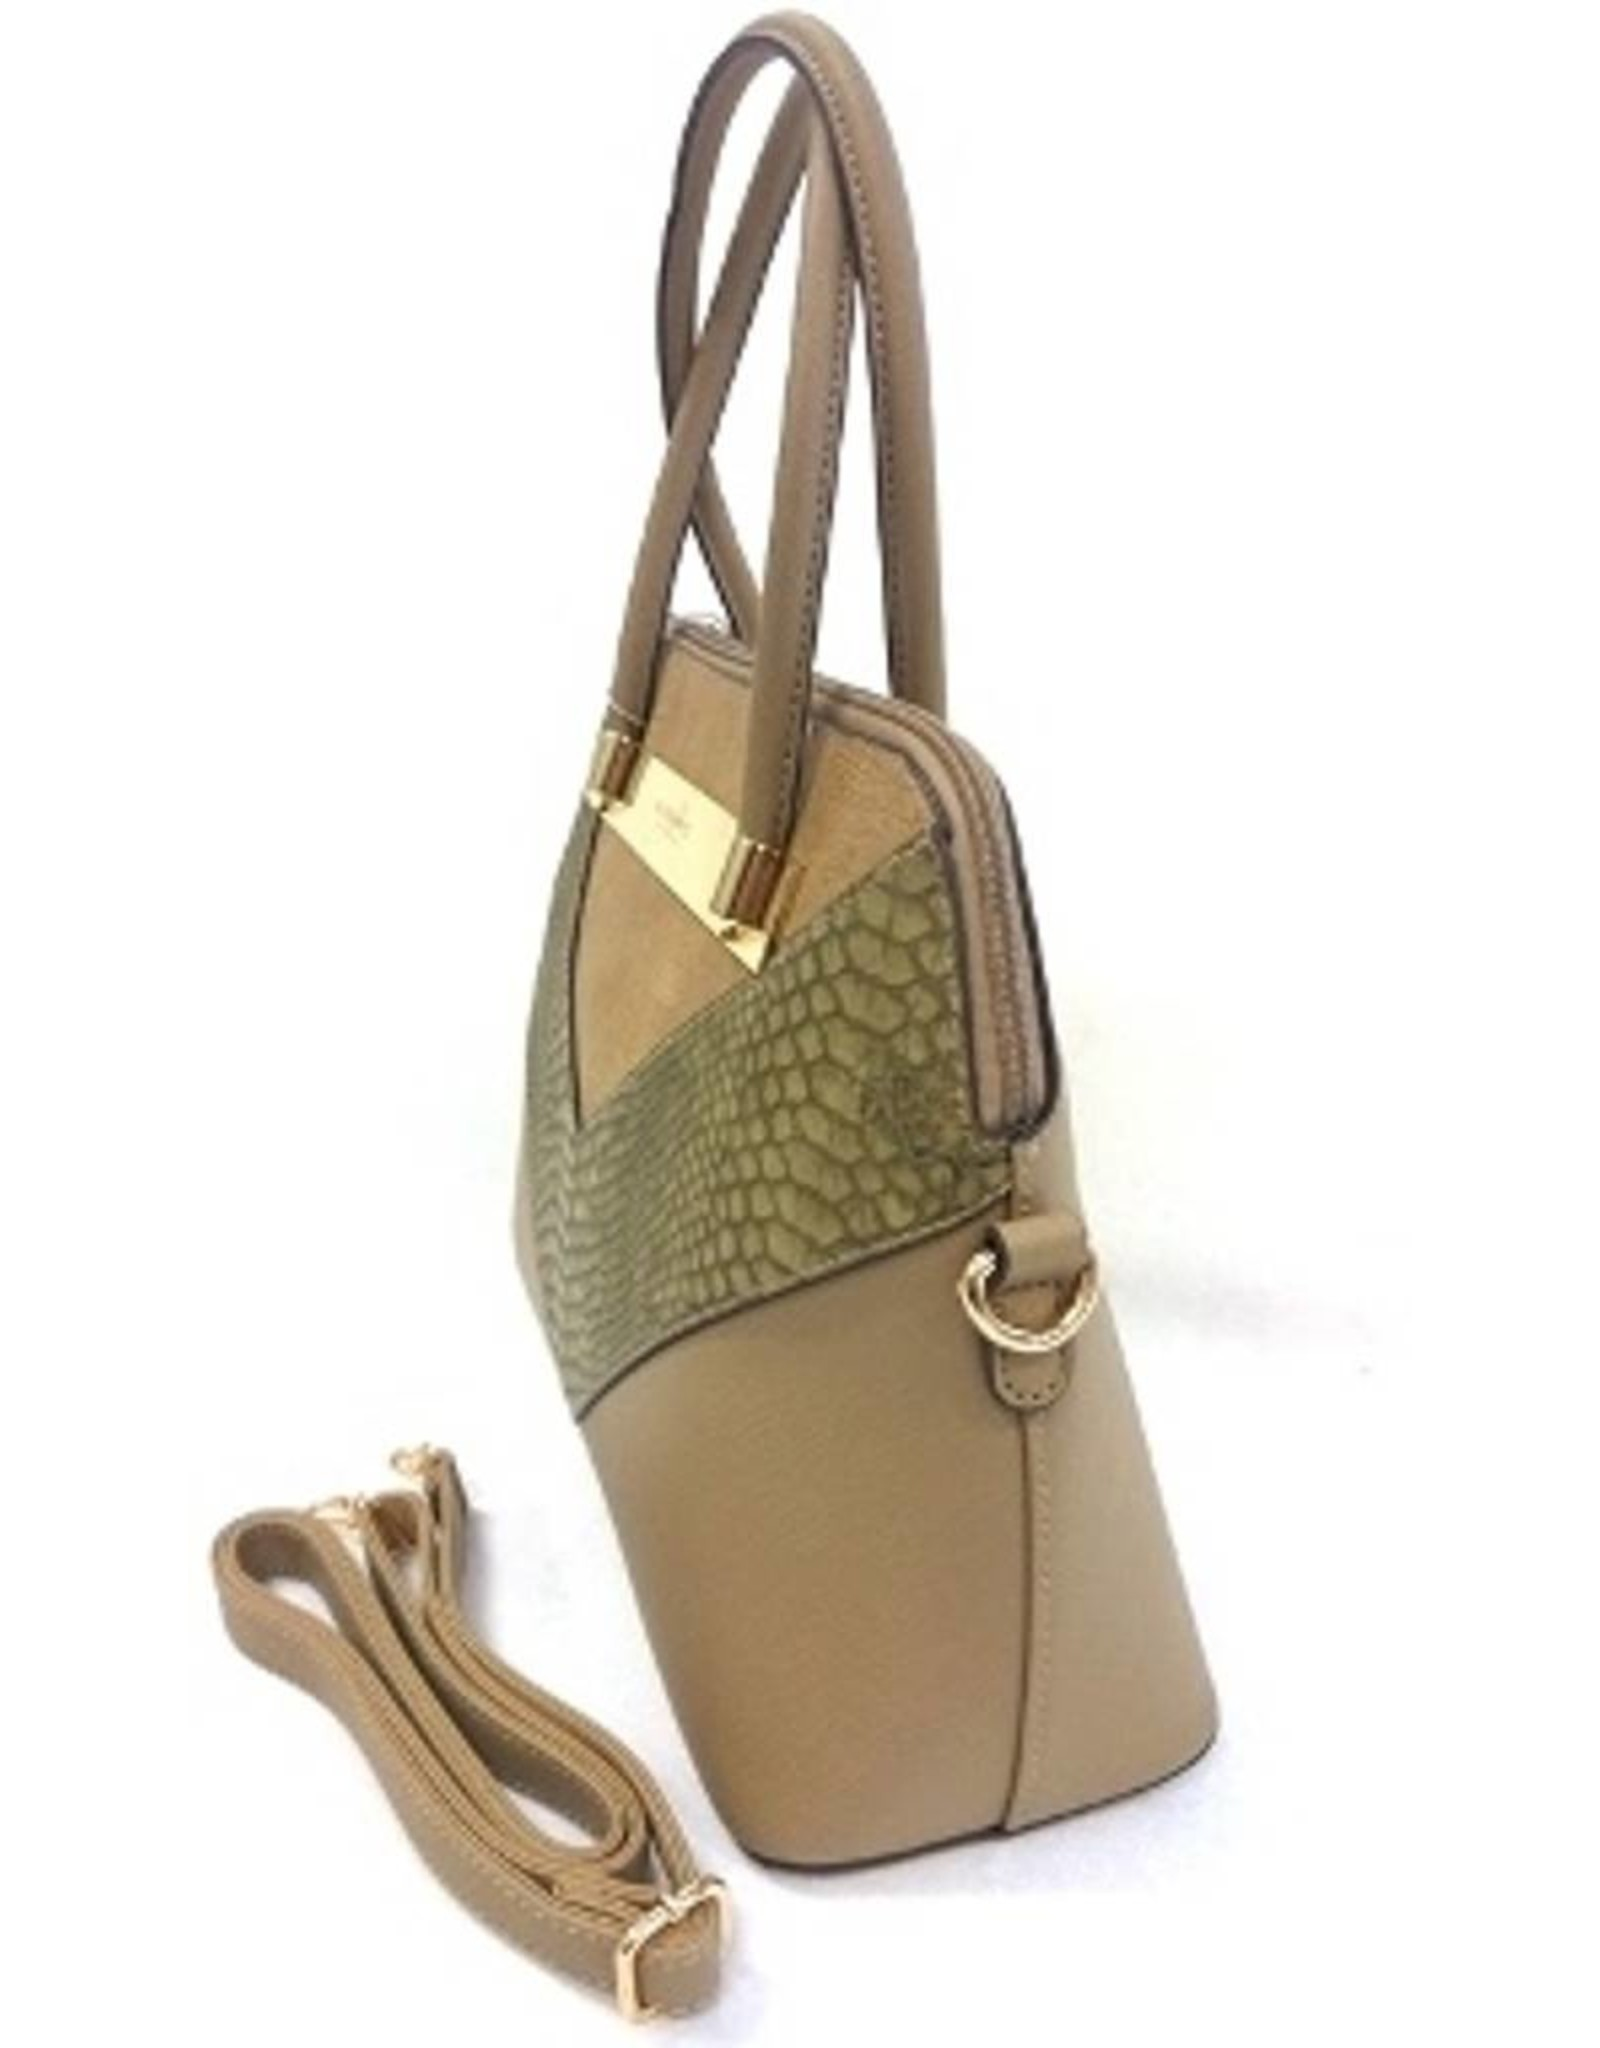 David Jones Handtassen - David Jones Handtas Camel 5222